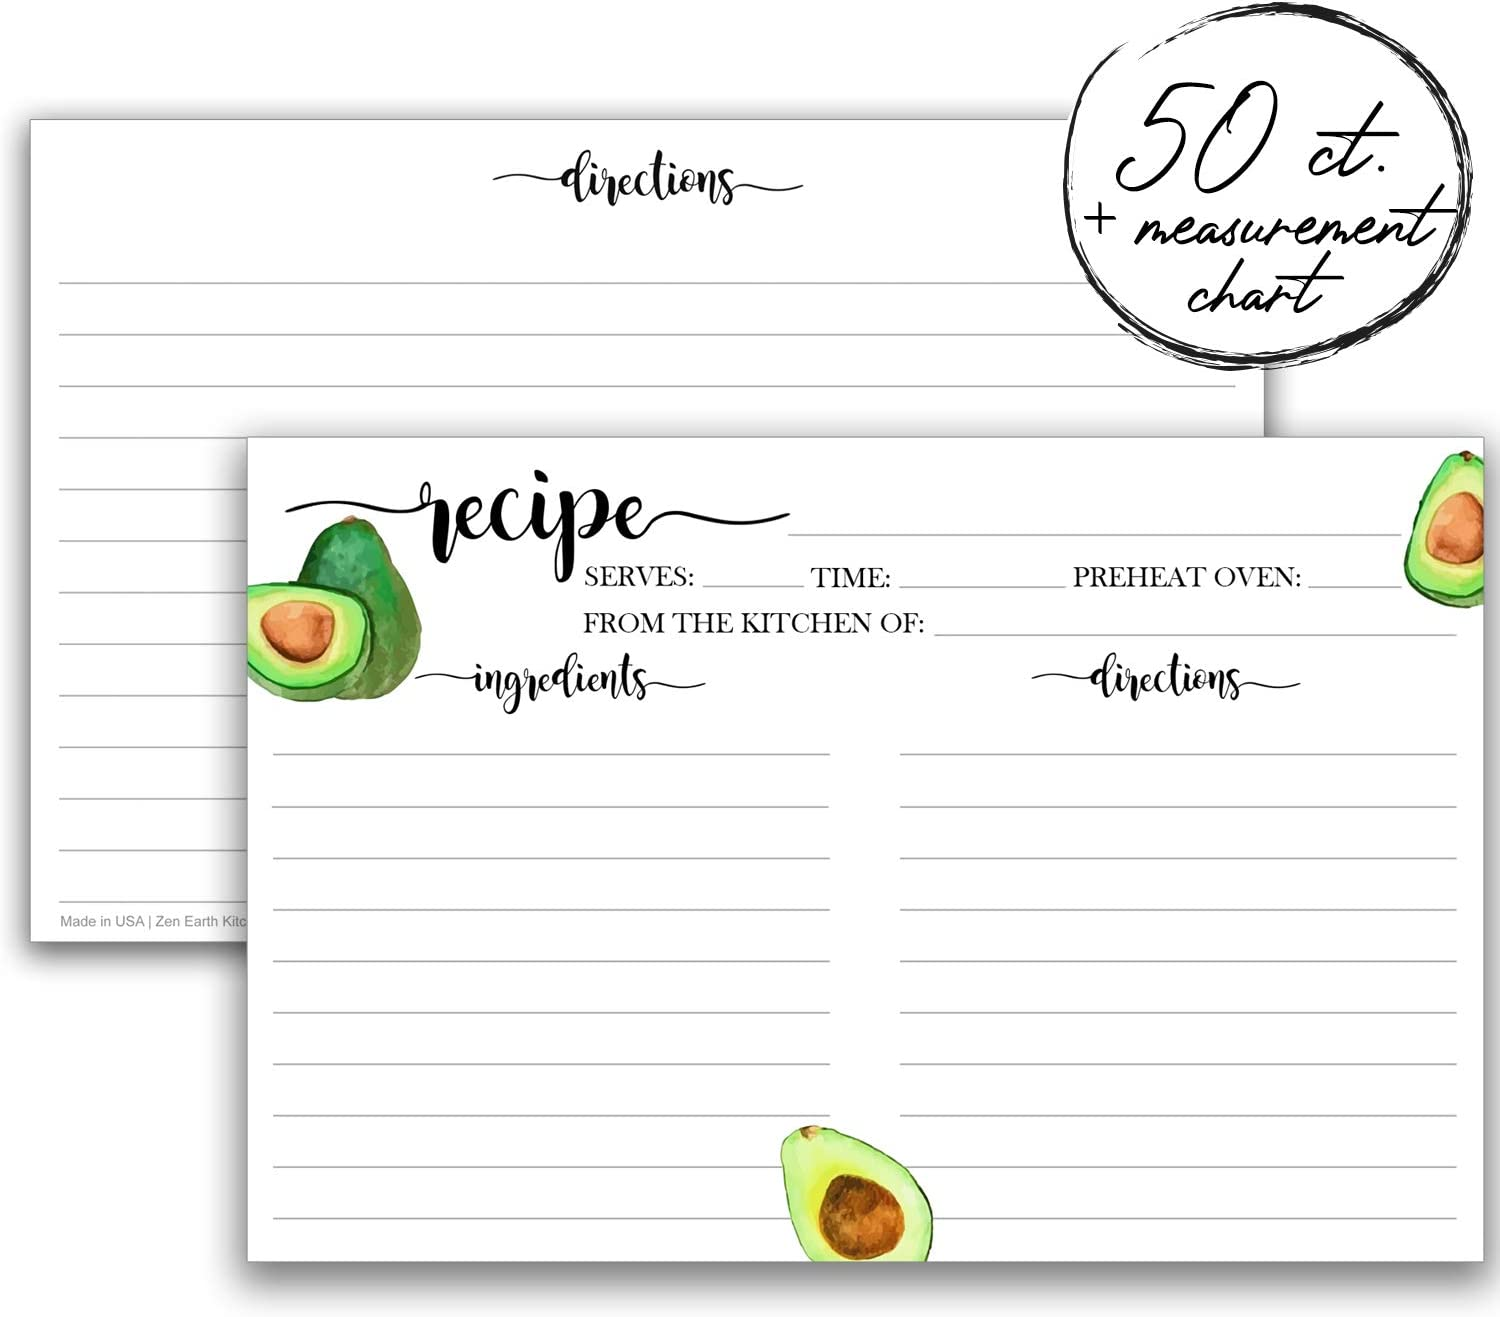 Zen Earth Made with Love Thick Matte Vines Recipe Cards 4x6 Double Sided Set of 50 Wedding Bridal Shower Gifts Cute Notecards for Organized Kitchen Storage Non-Smudge Paper